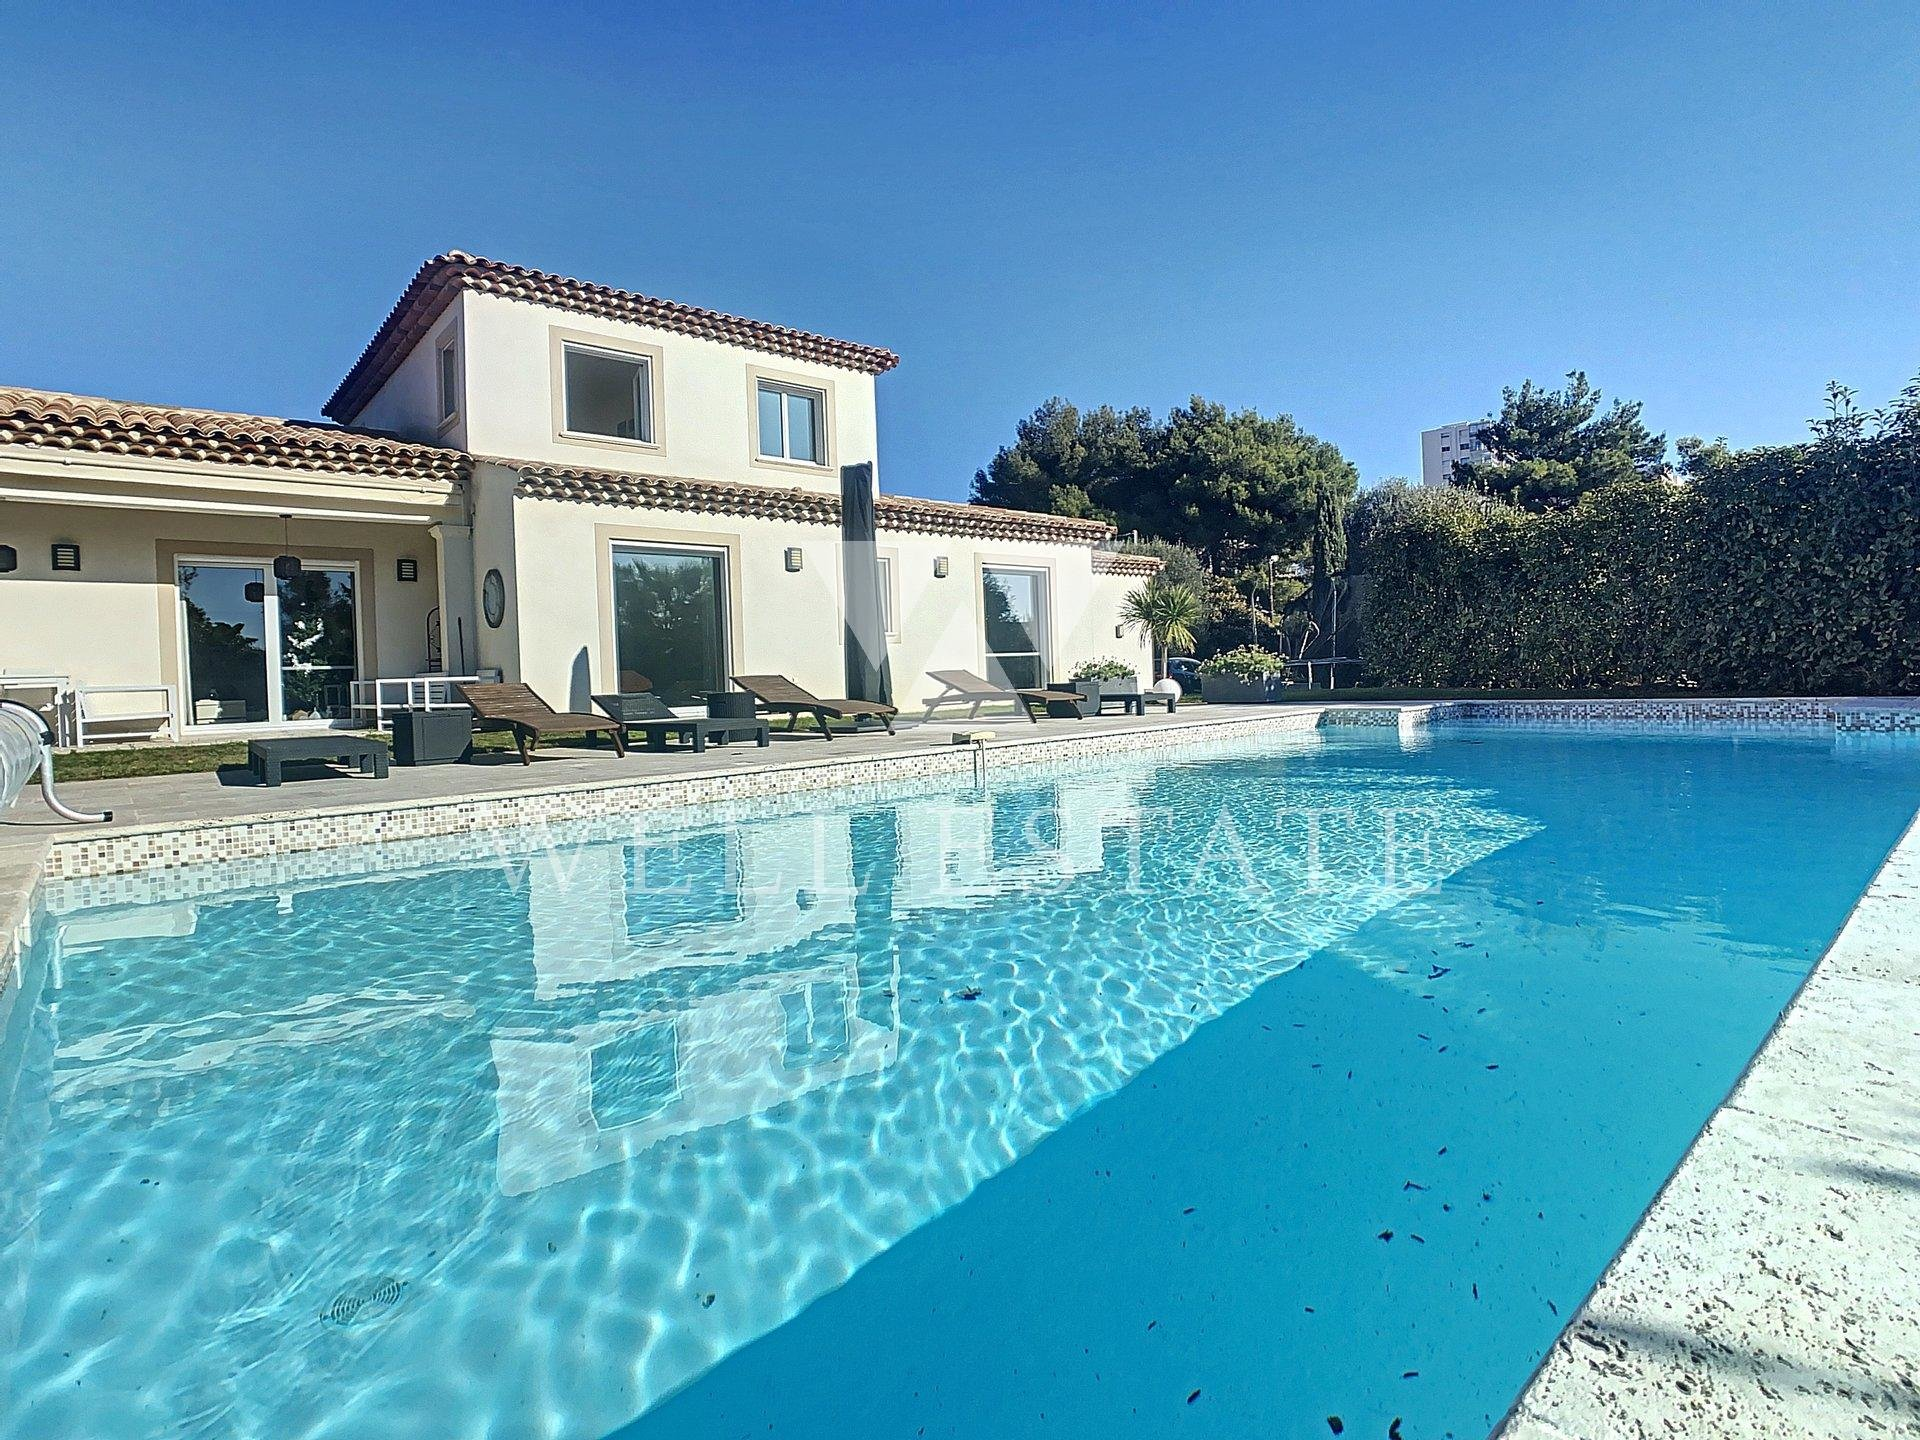 ANTIBES CHARMING VILLA 4 BEDROOMS NICE SWIMMING POOL